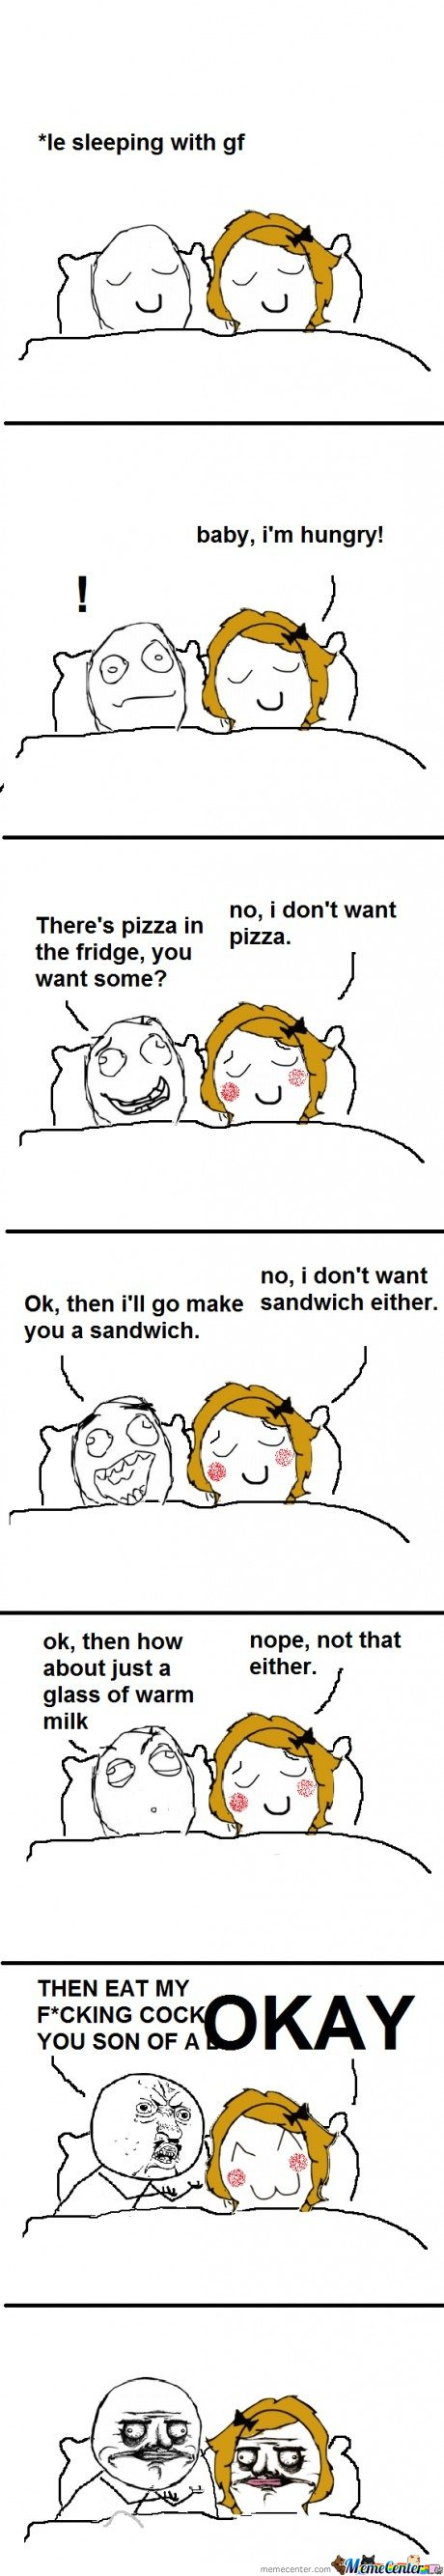 Le sleeping with gf rage